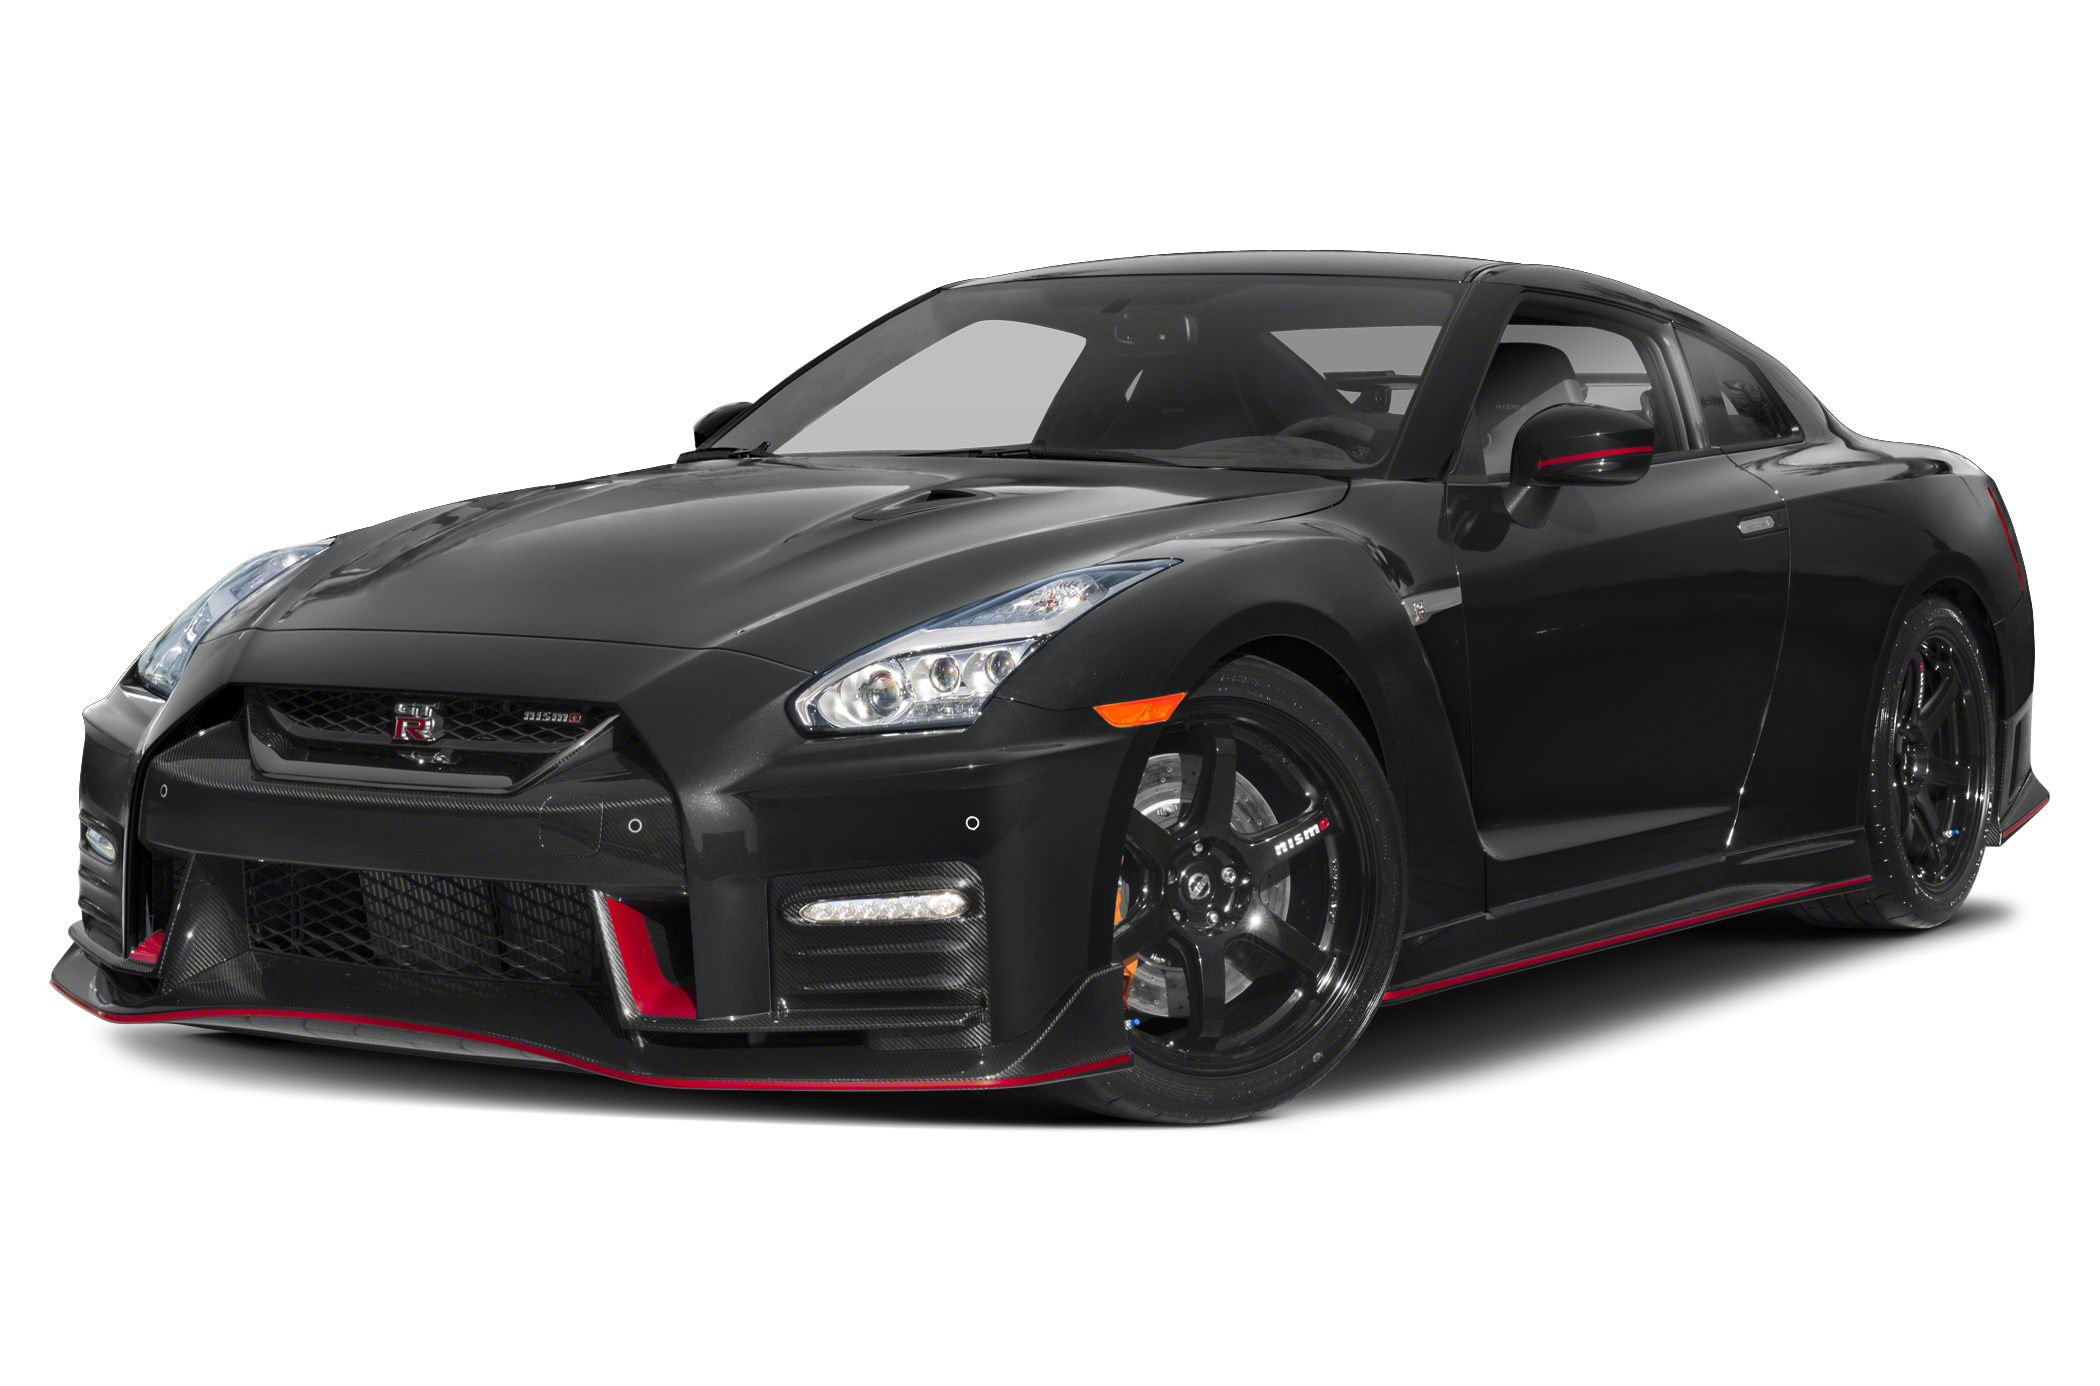 2018 Nissan Gt R Nismo 2dr All Wheel Drive Coupe Specs And Prices